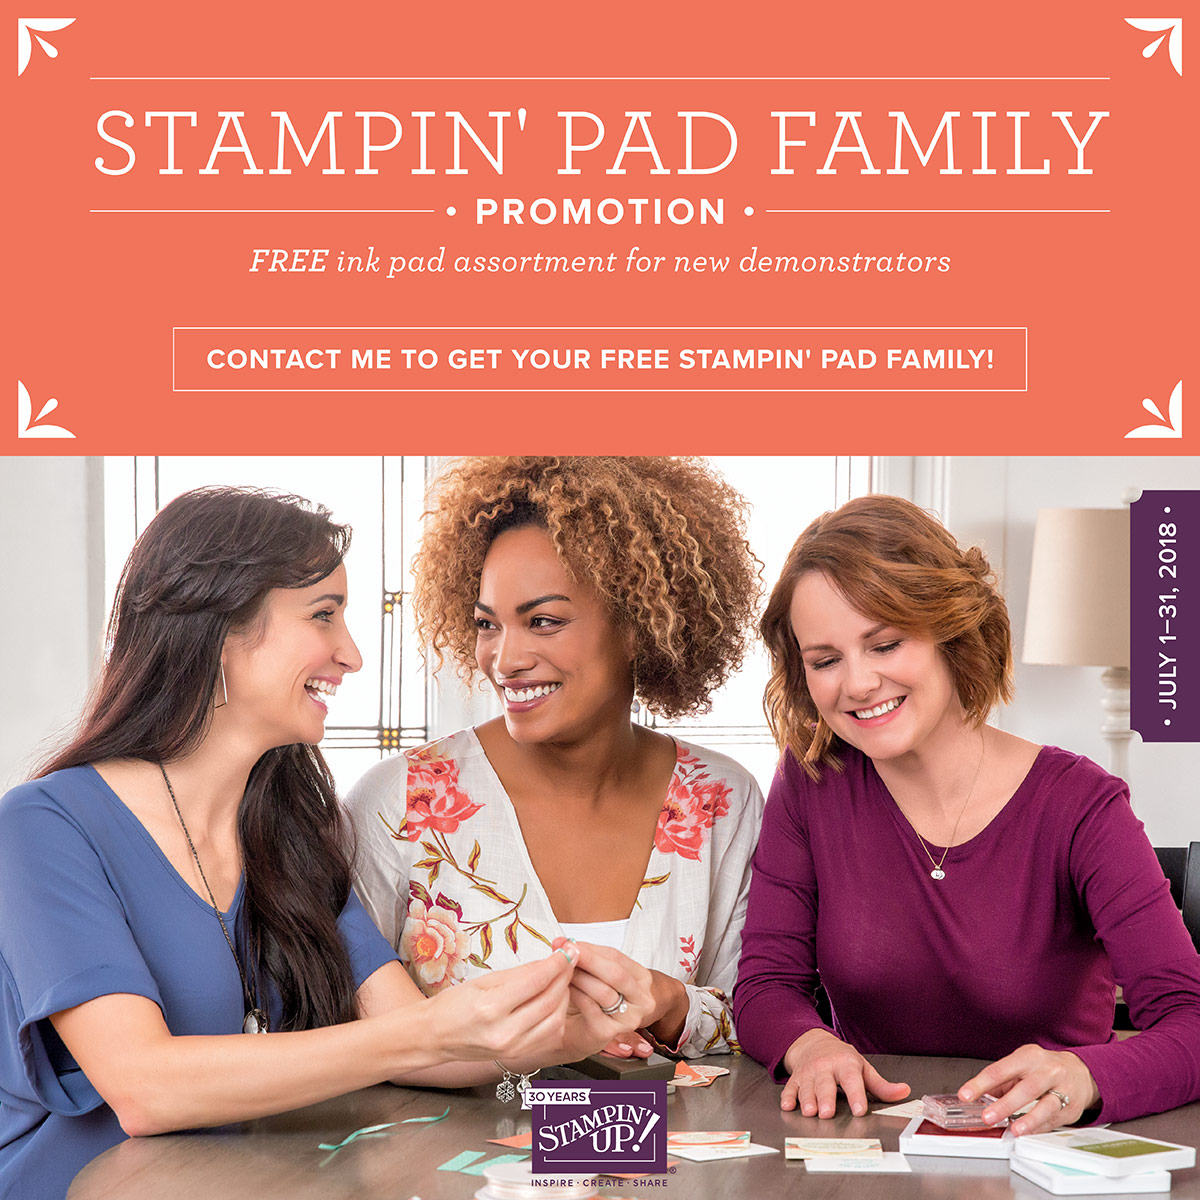 Free Ink pad assortment when you Join Stampin Up in July - Jeanie Stark www.juststampin.com StampinUp